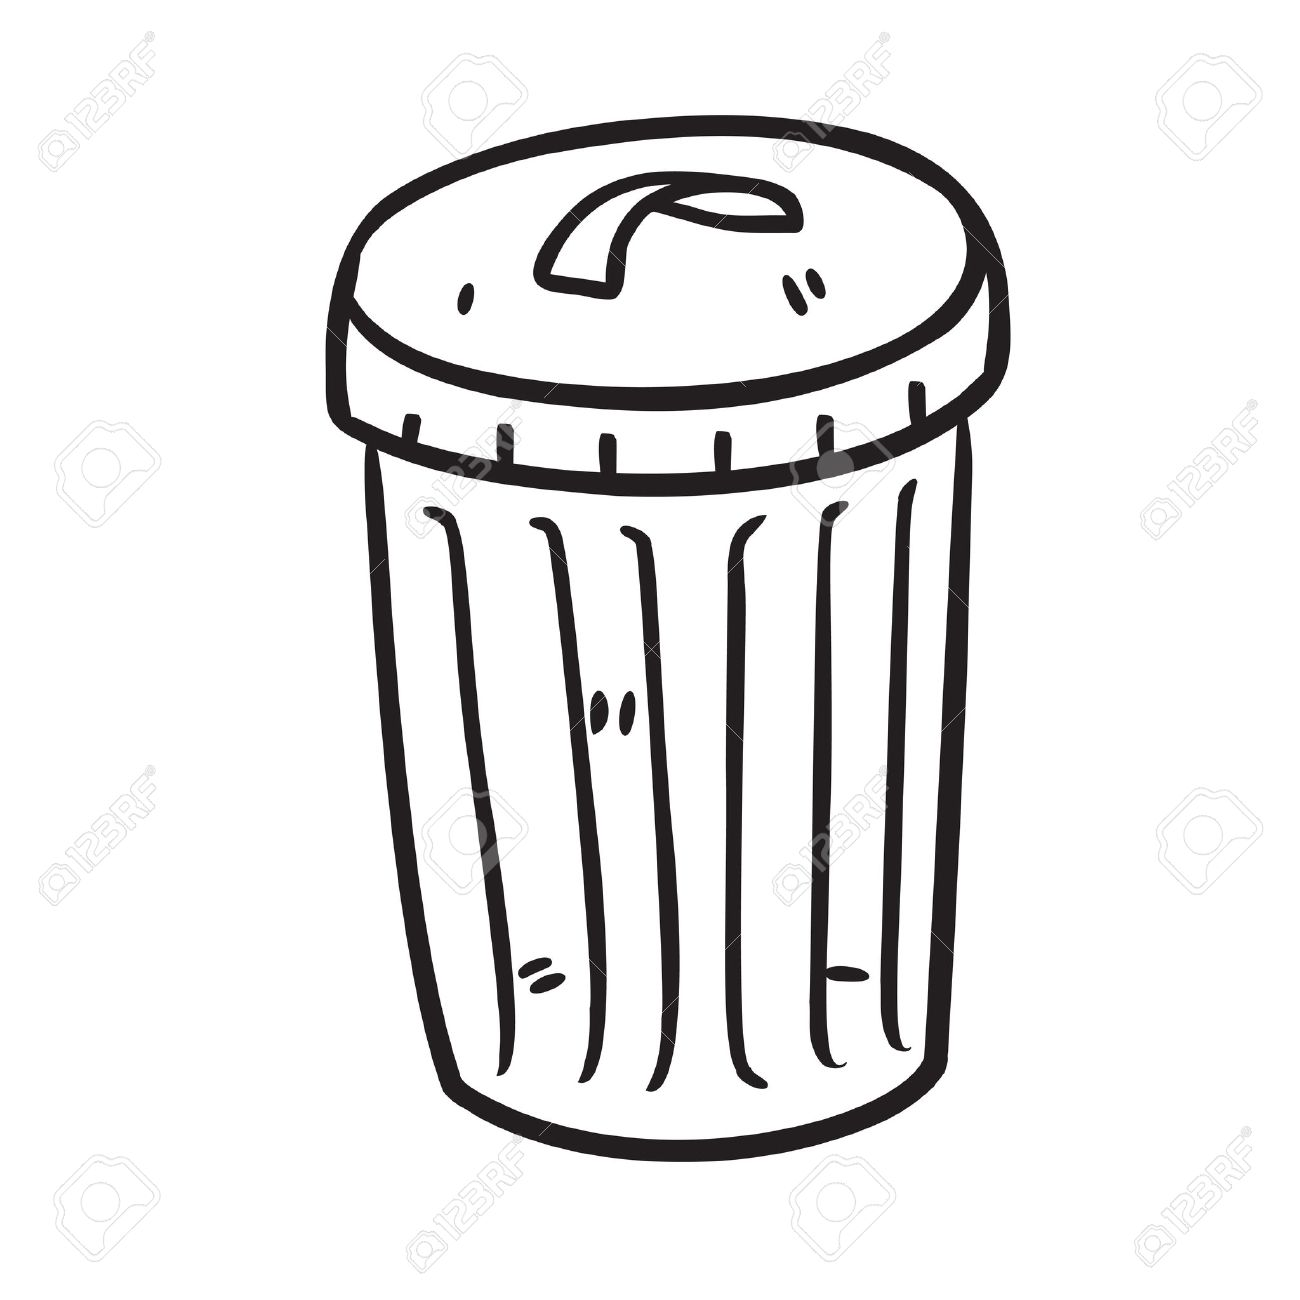 Trash Bin Royalty Free Cliparts, Vectors, And Stock Illustration.